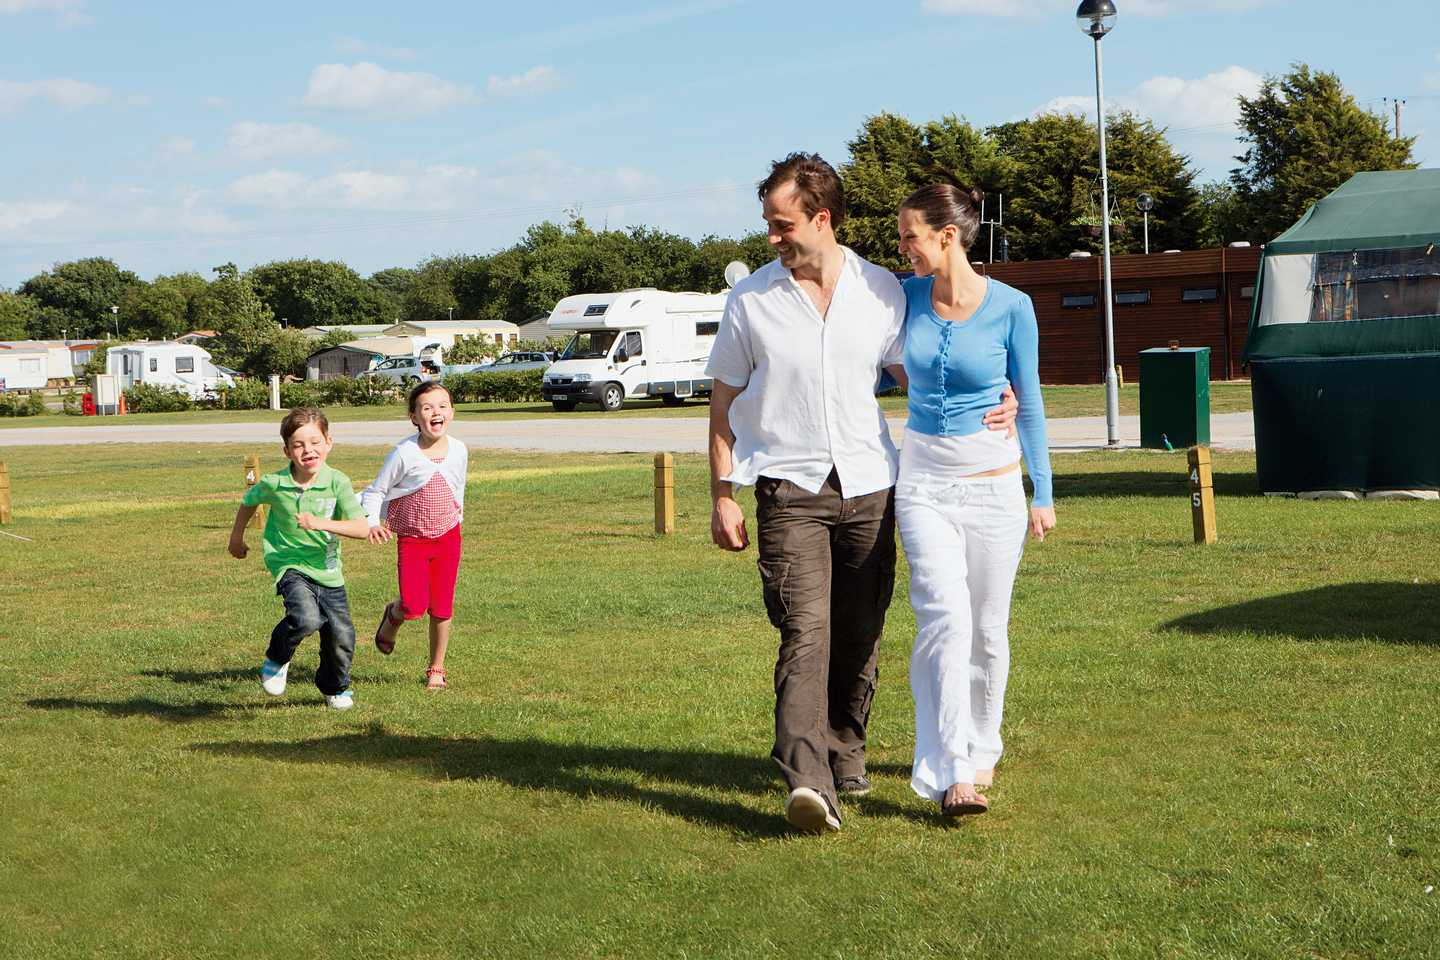 A family going for a walk around the touring area